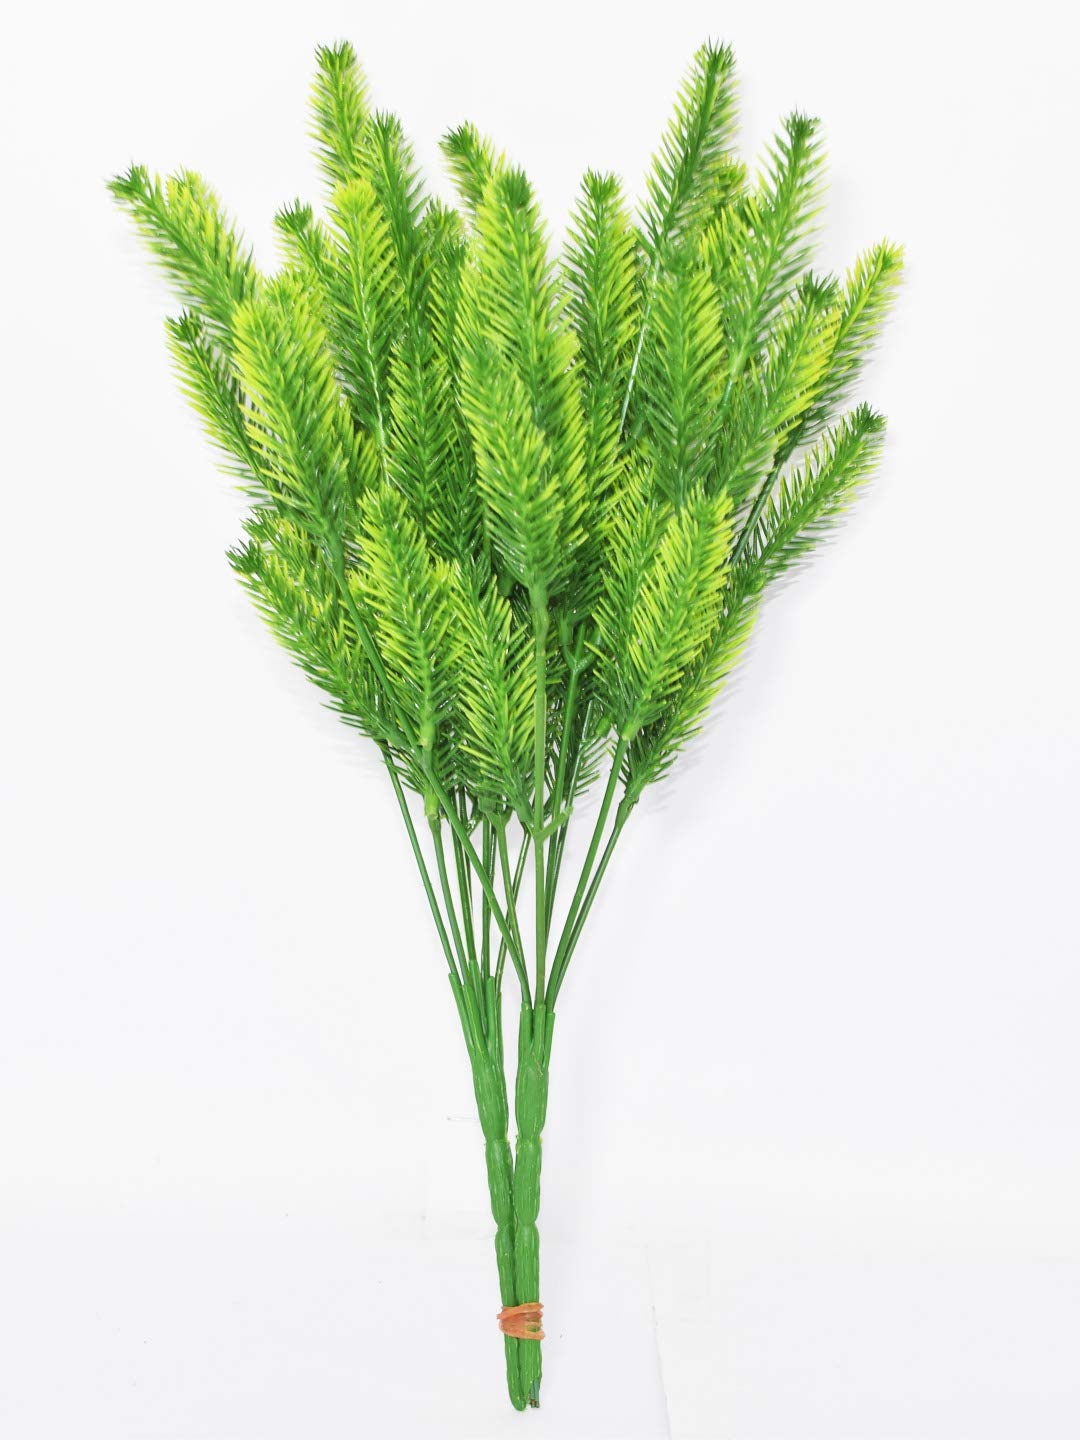 Tall Artificial Meadow Grass Bushfor Indoor or Outdoor Decor